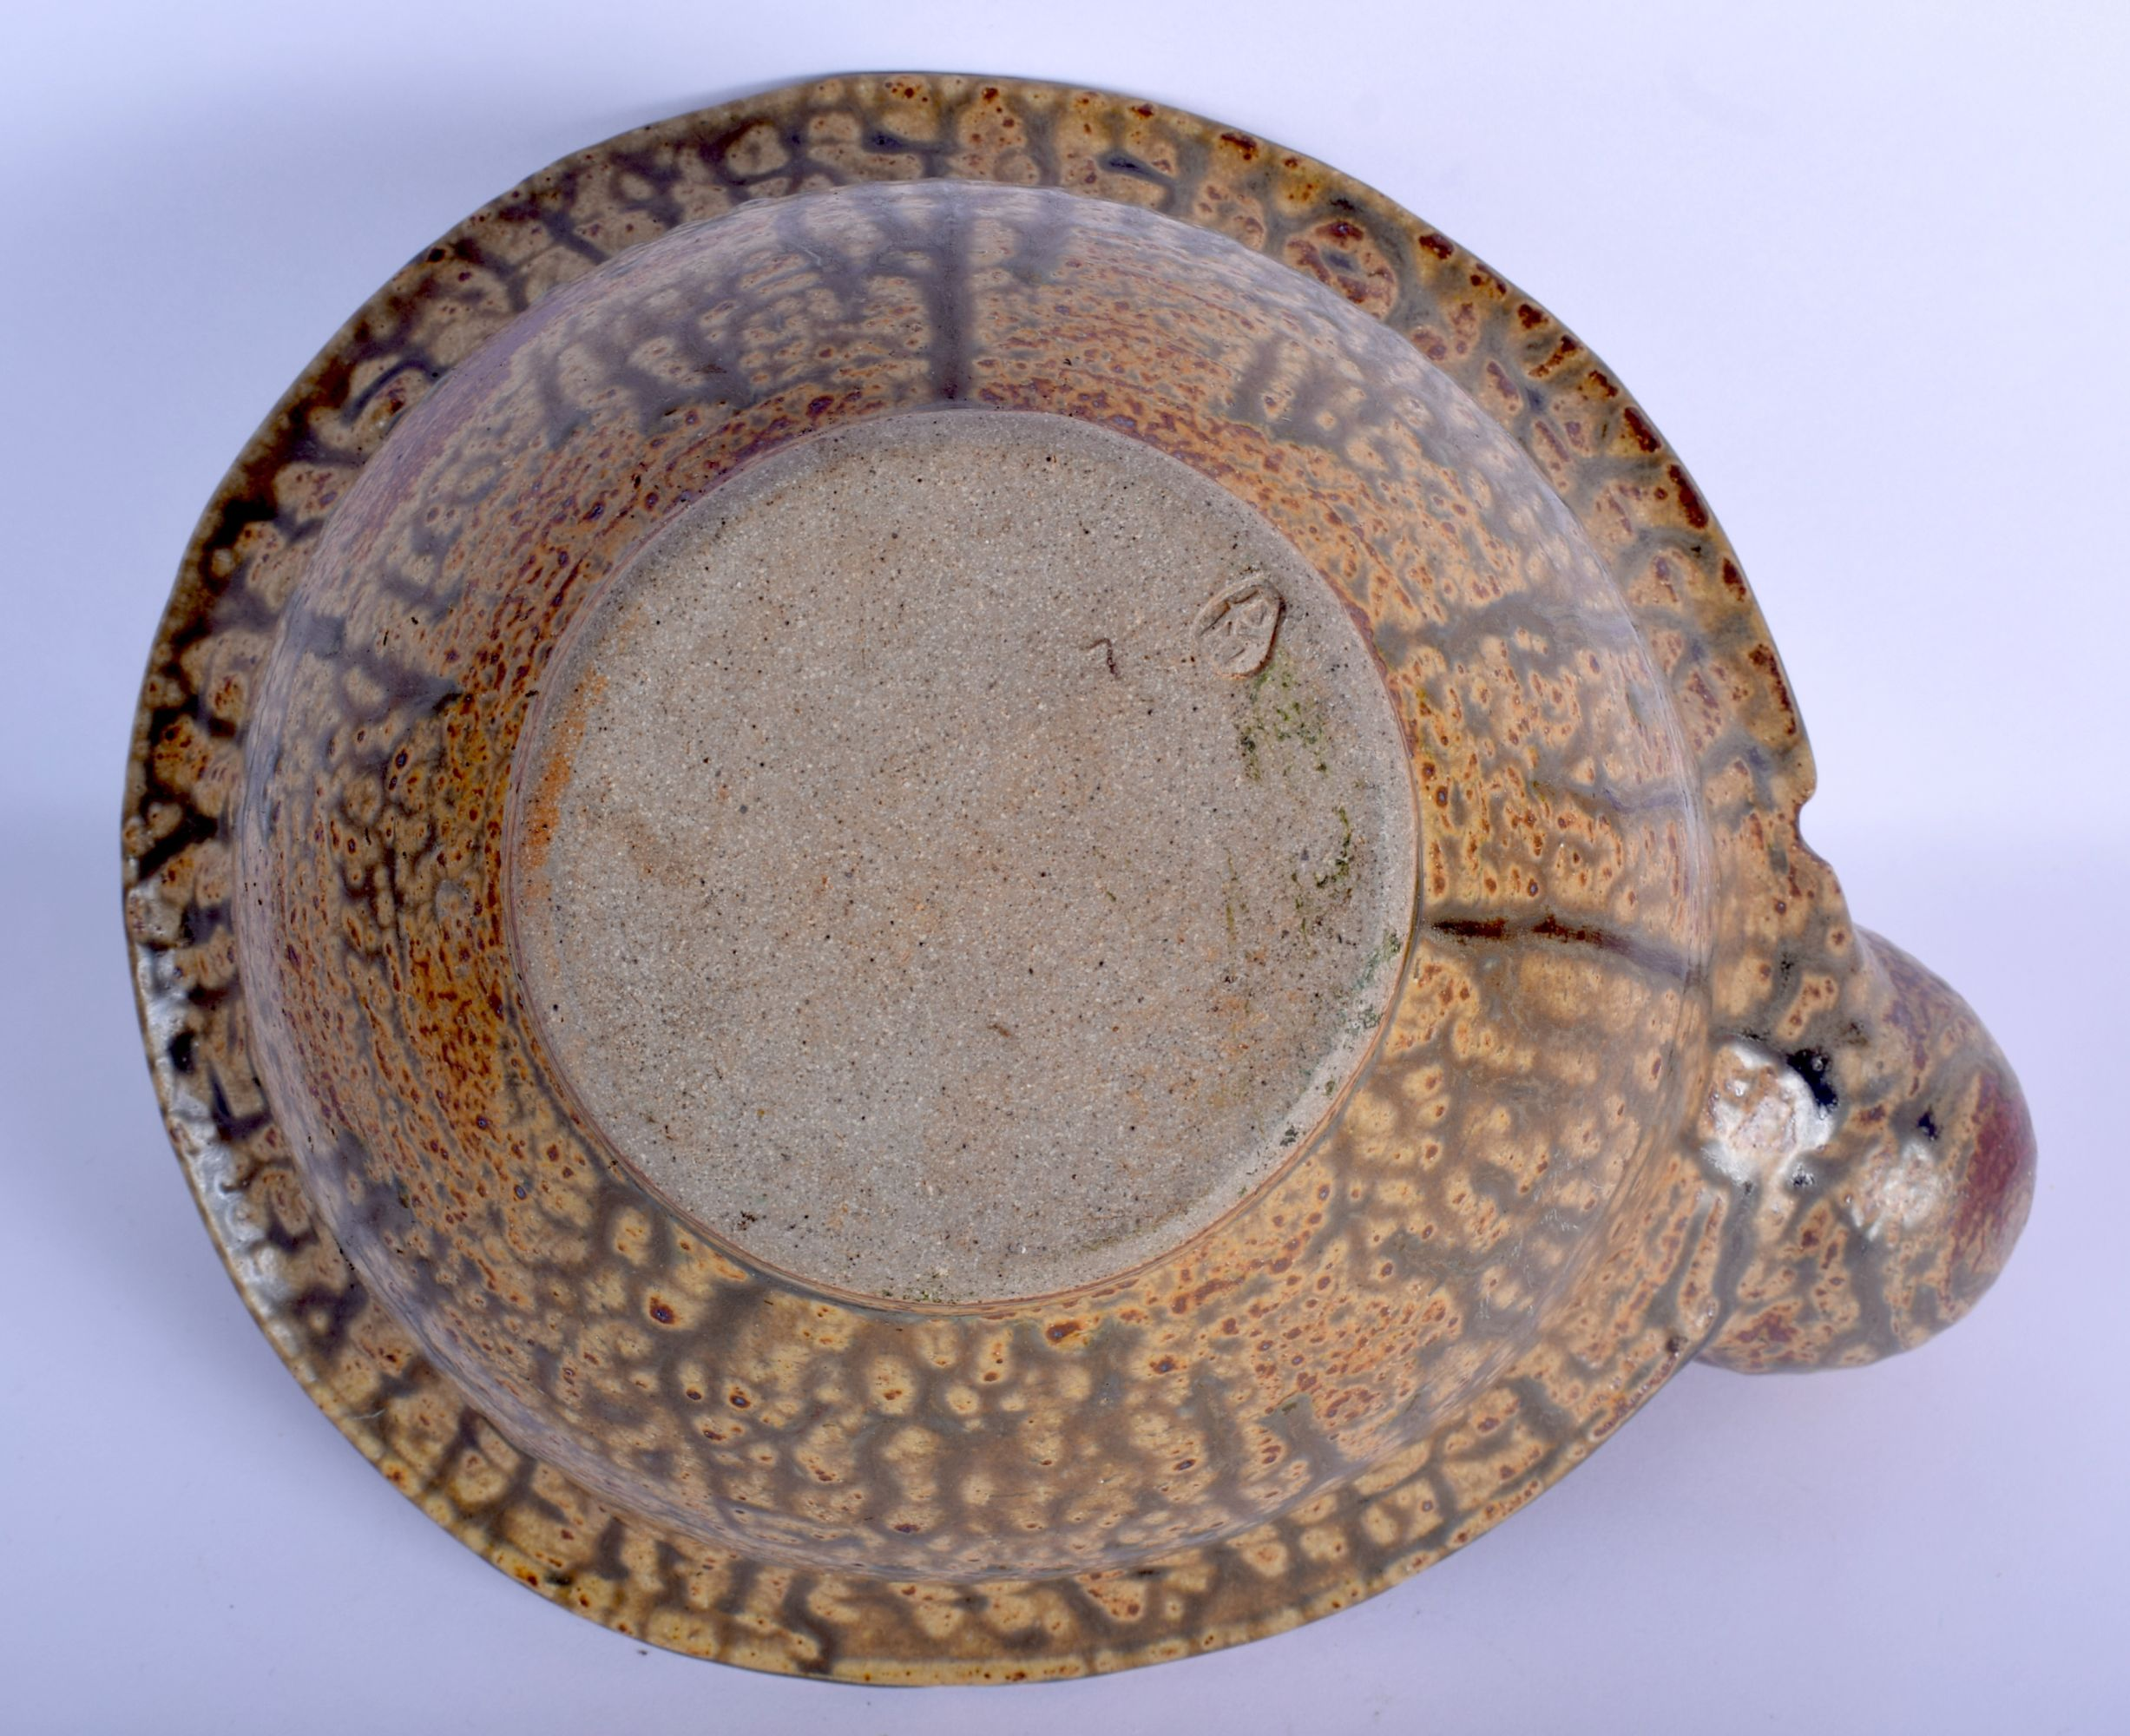 AN UNUSUAL STUDIO POTTERY STONEWARE BOWL unusually modelled with an overlaid amphora. 21 cm x 27 cm. - Image 4 of 5